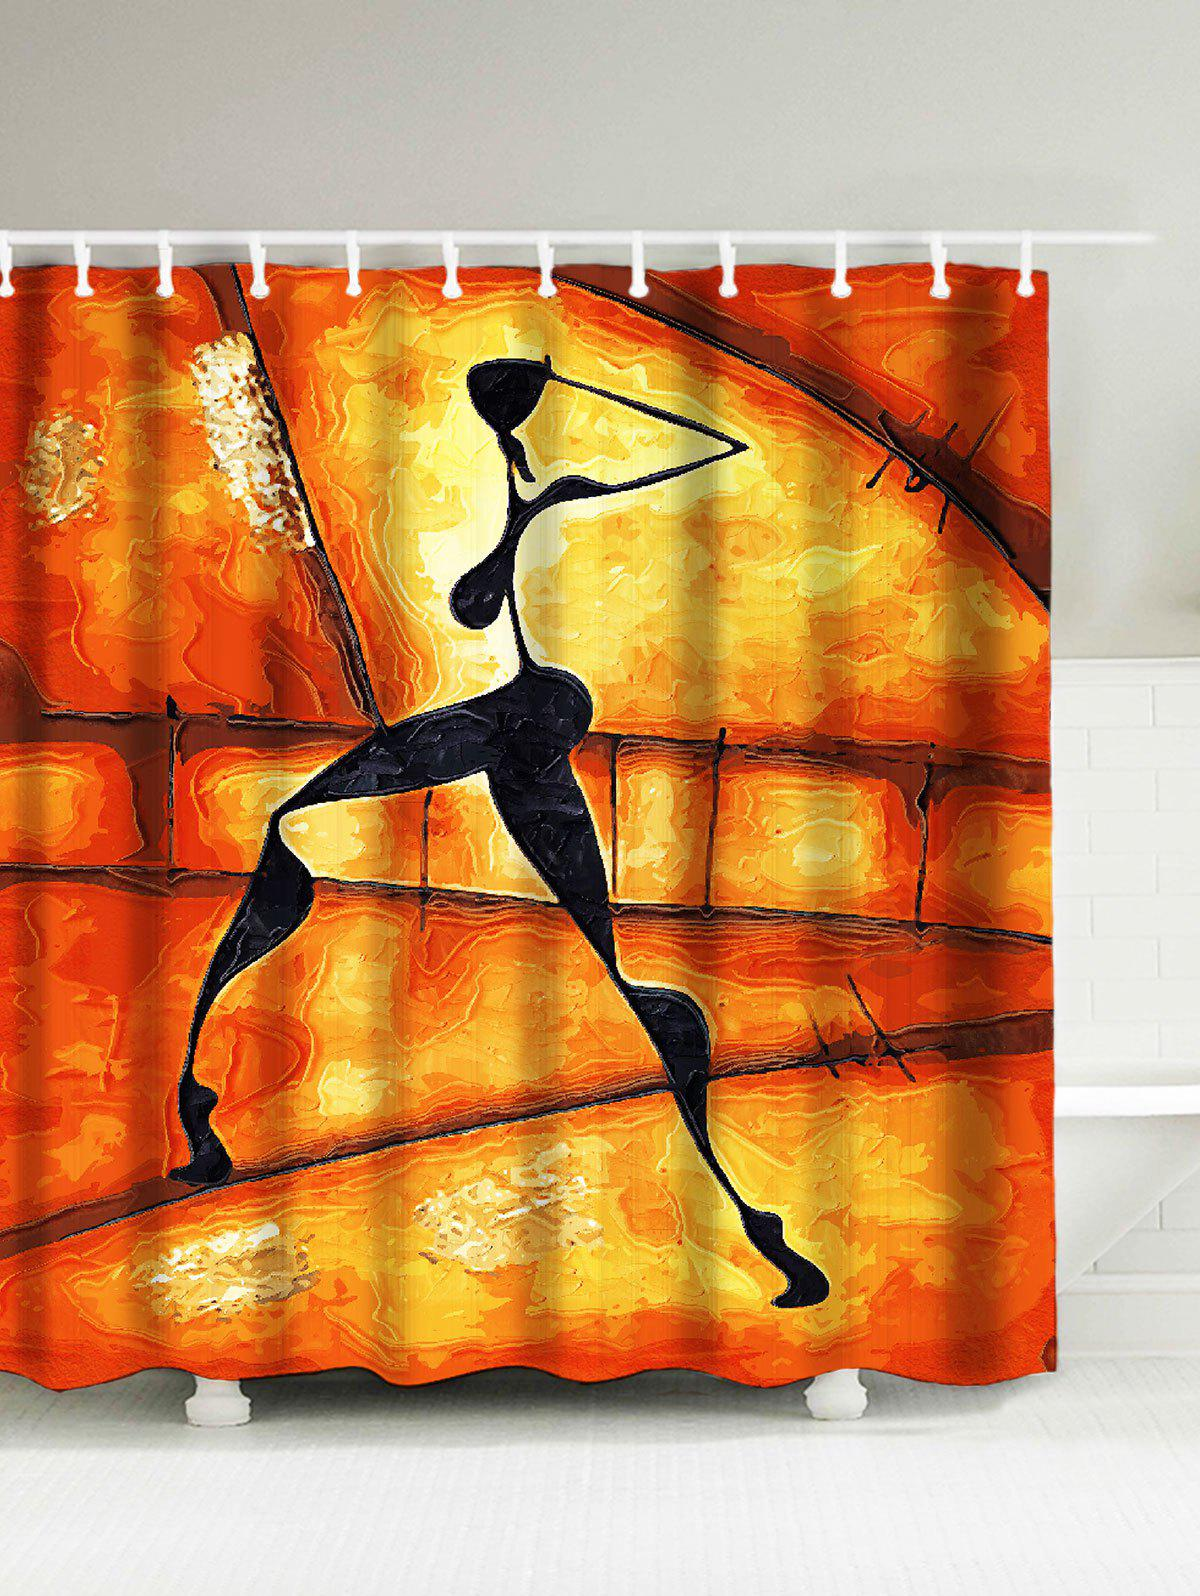 Figure Shadow Print Waterproof Afro Shower Curtain afro hair lady immersed in her own world pattern shower curtain